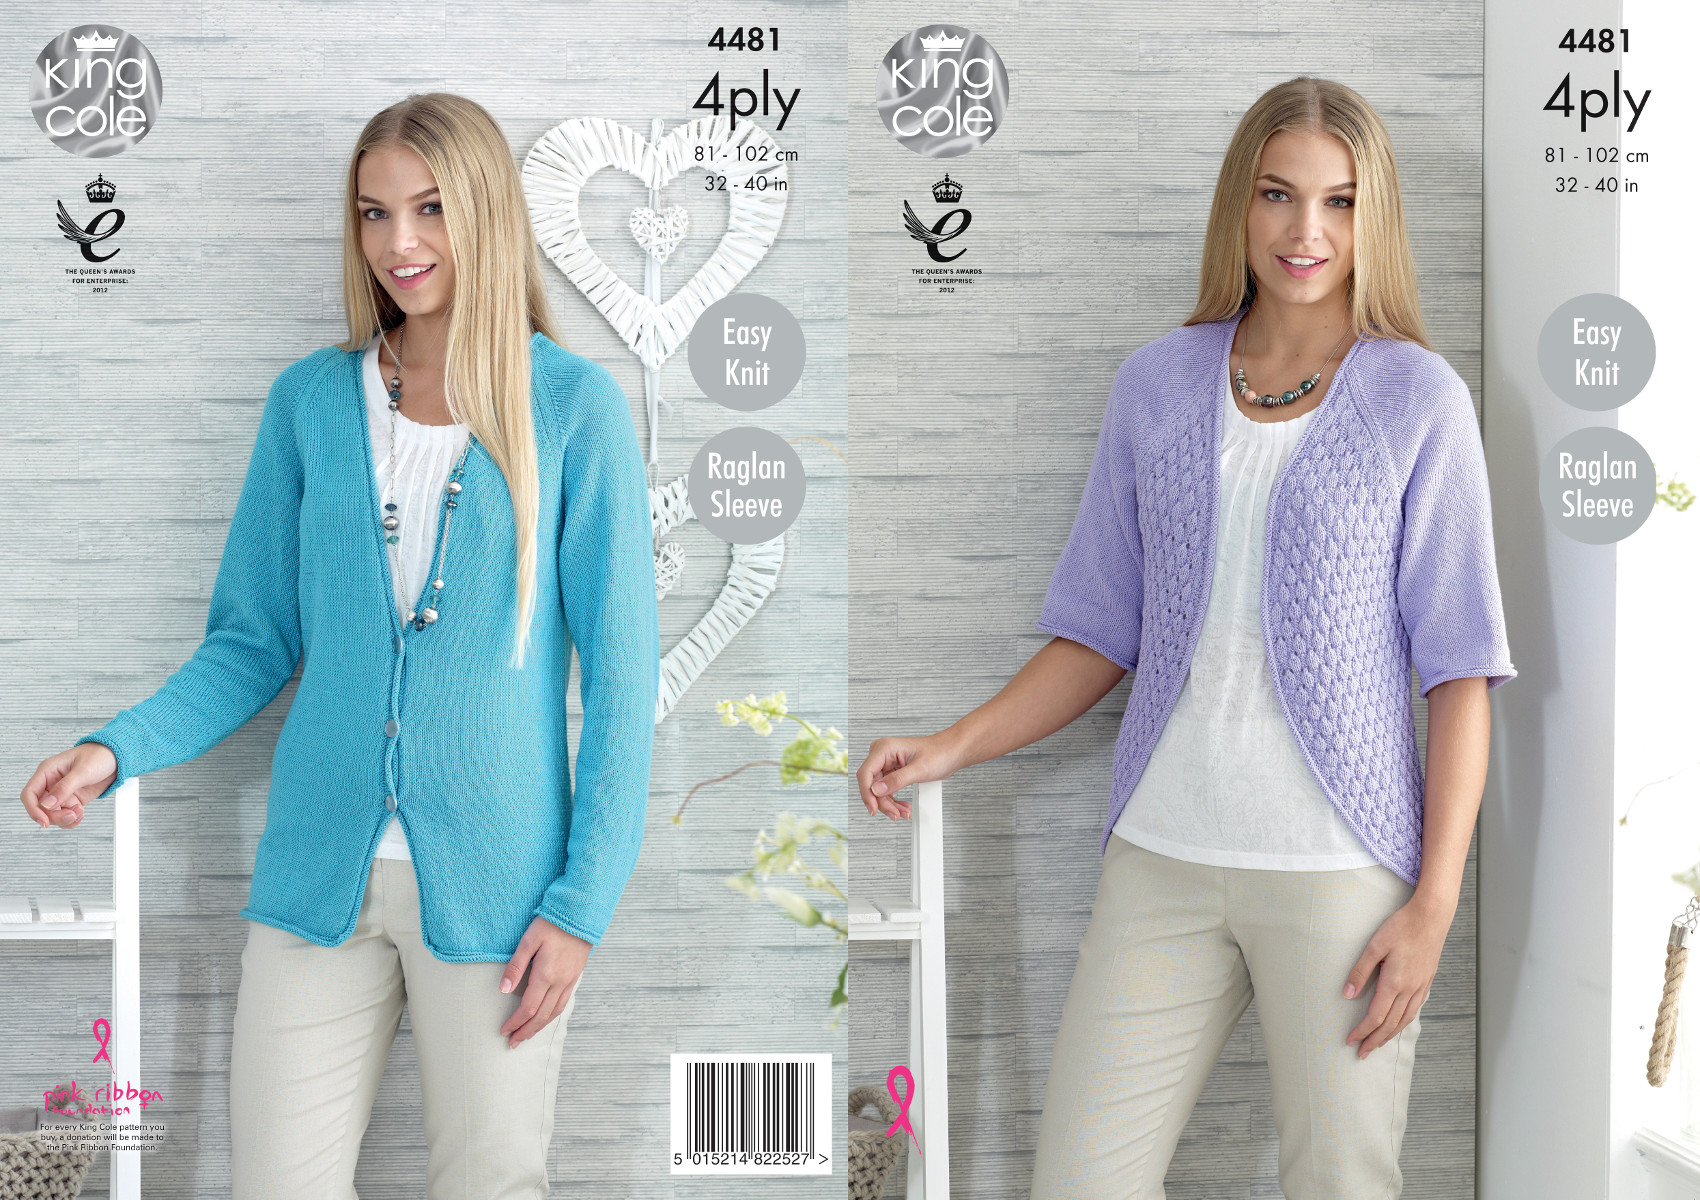 King Cole 4 Ply Knitting Pattern Easy Knit Ladies Lace Cardigan ...